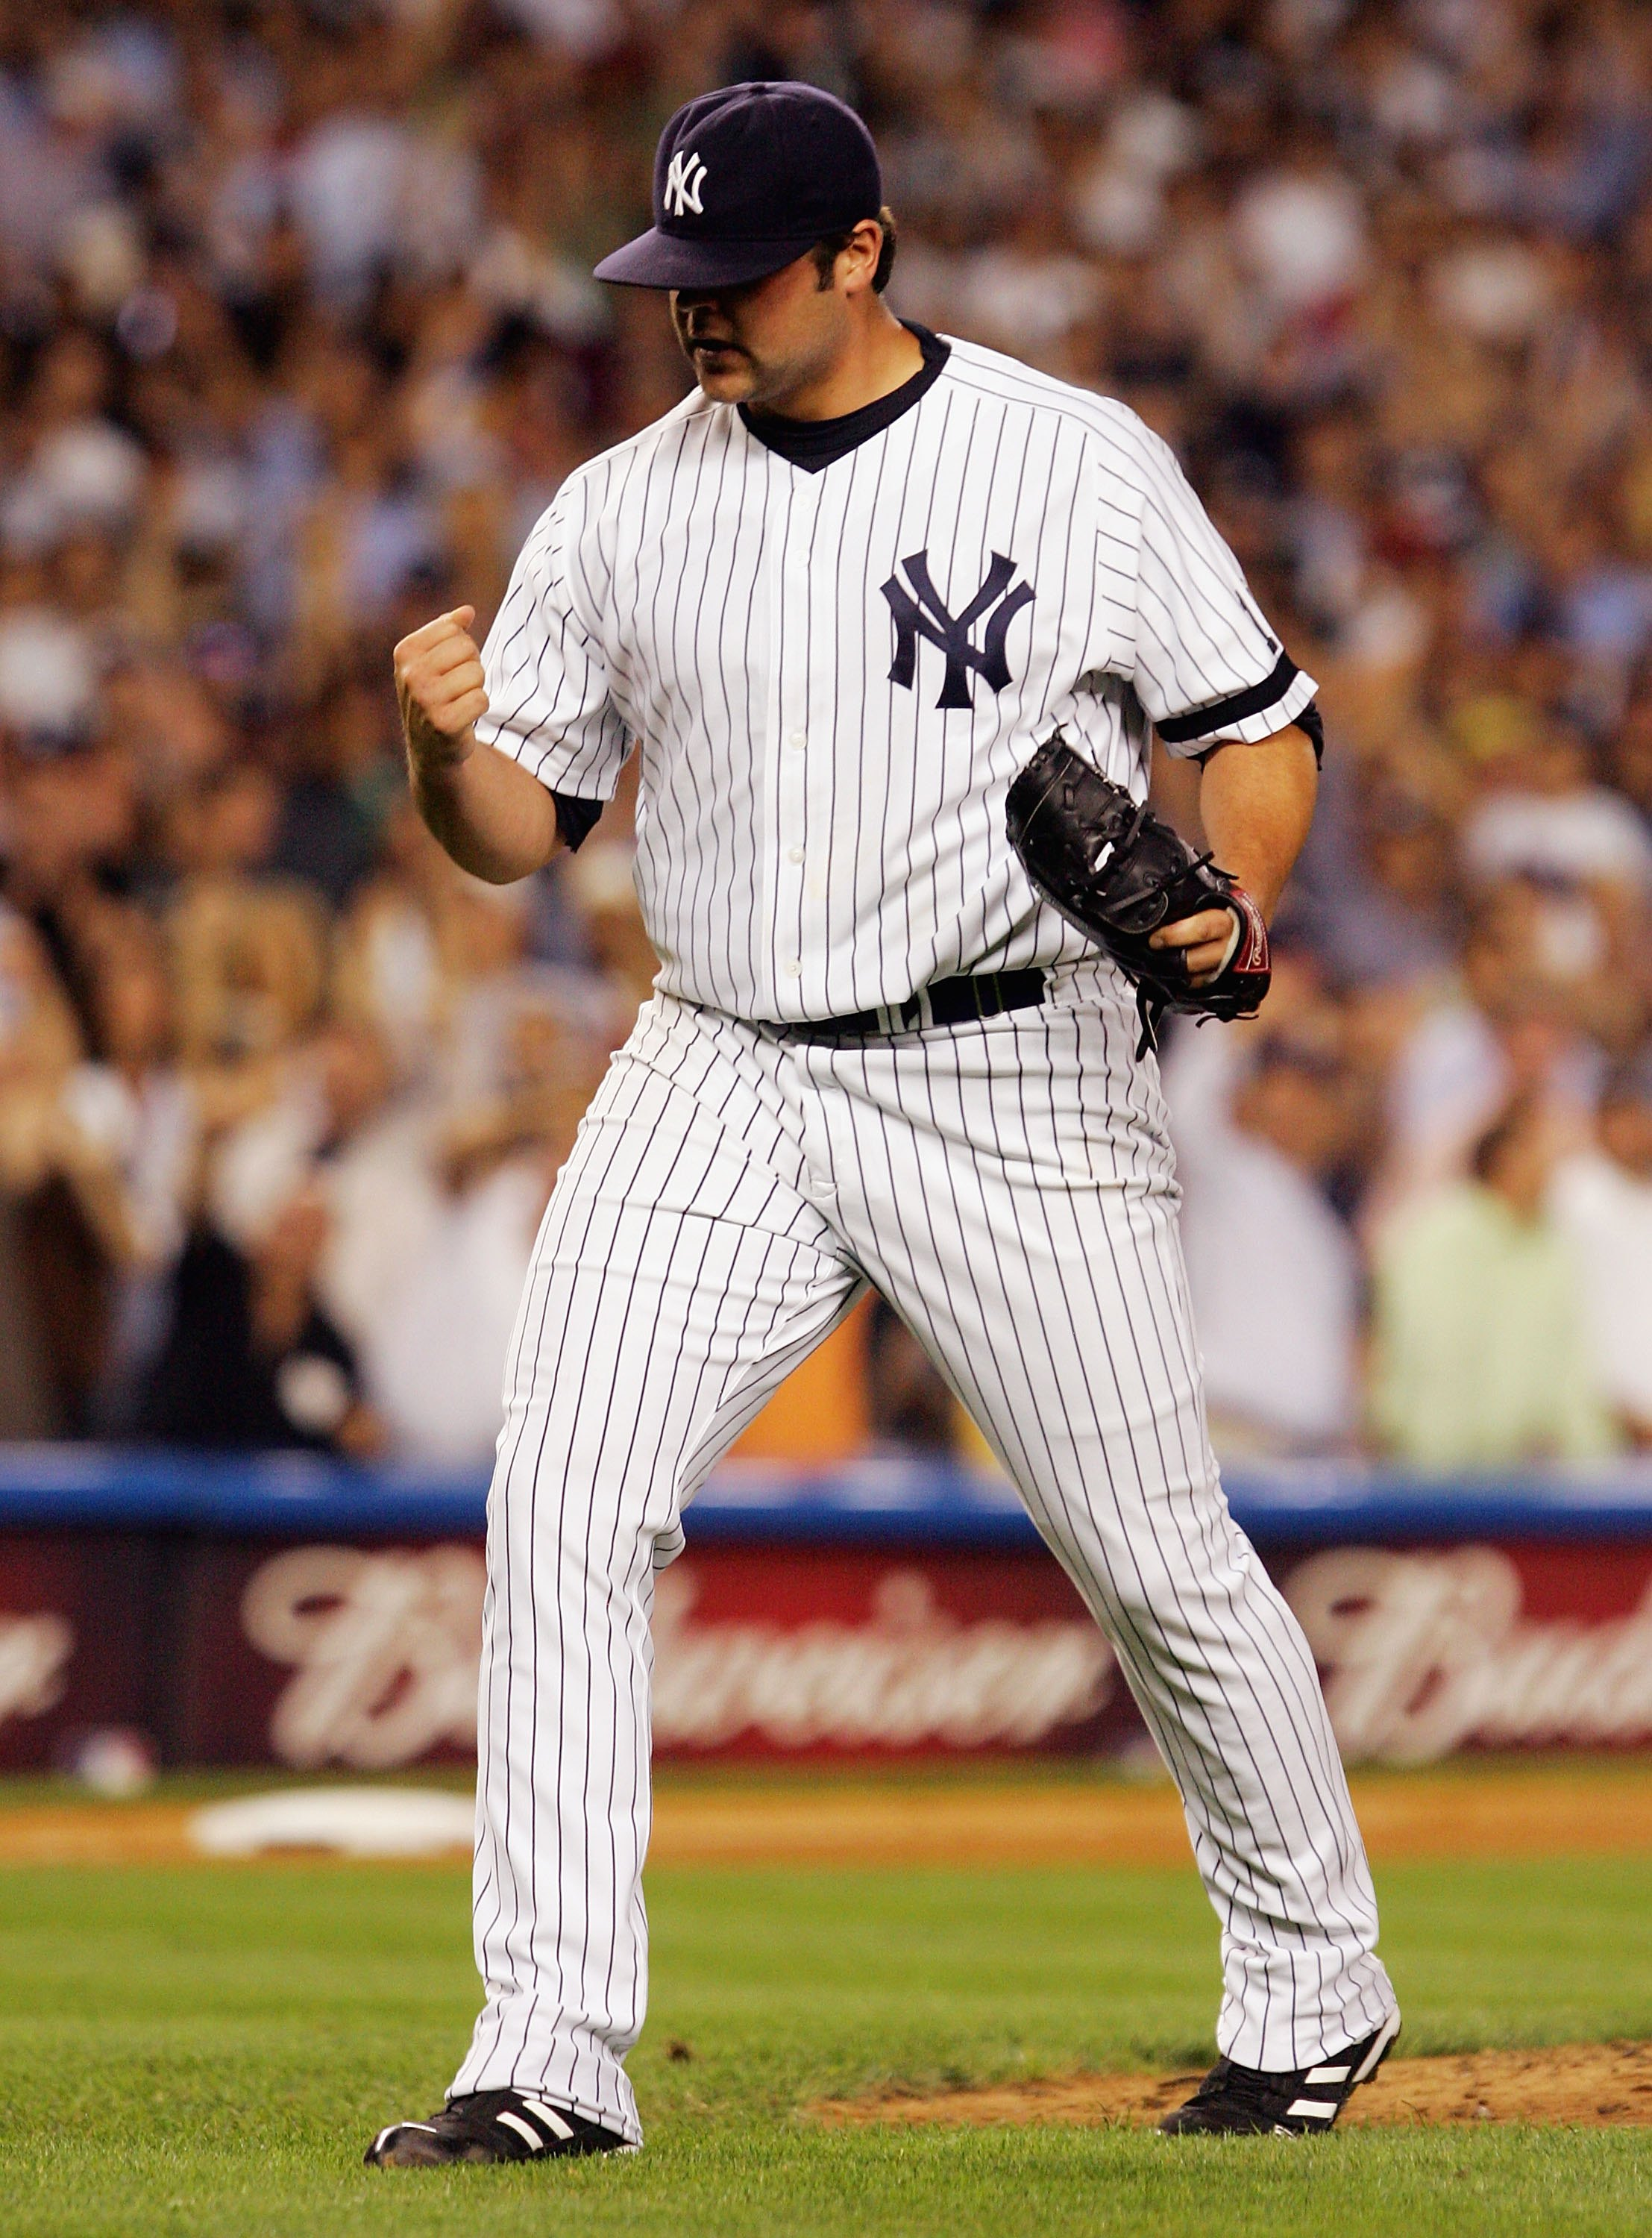 Once a common sight back in 2007, it's been a while since Chamberlain's shown confidence in himself on the mound.